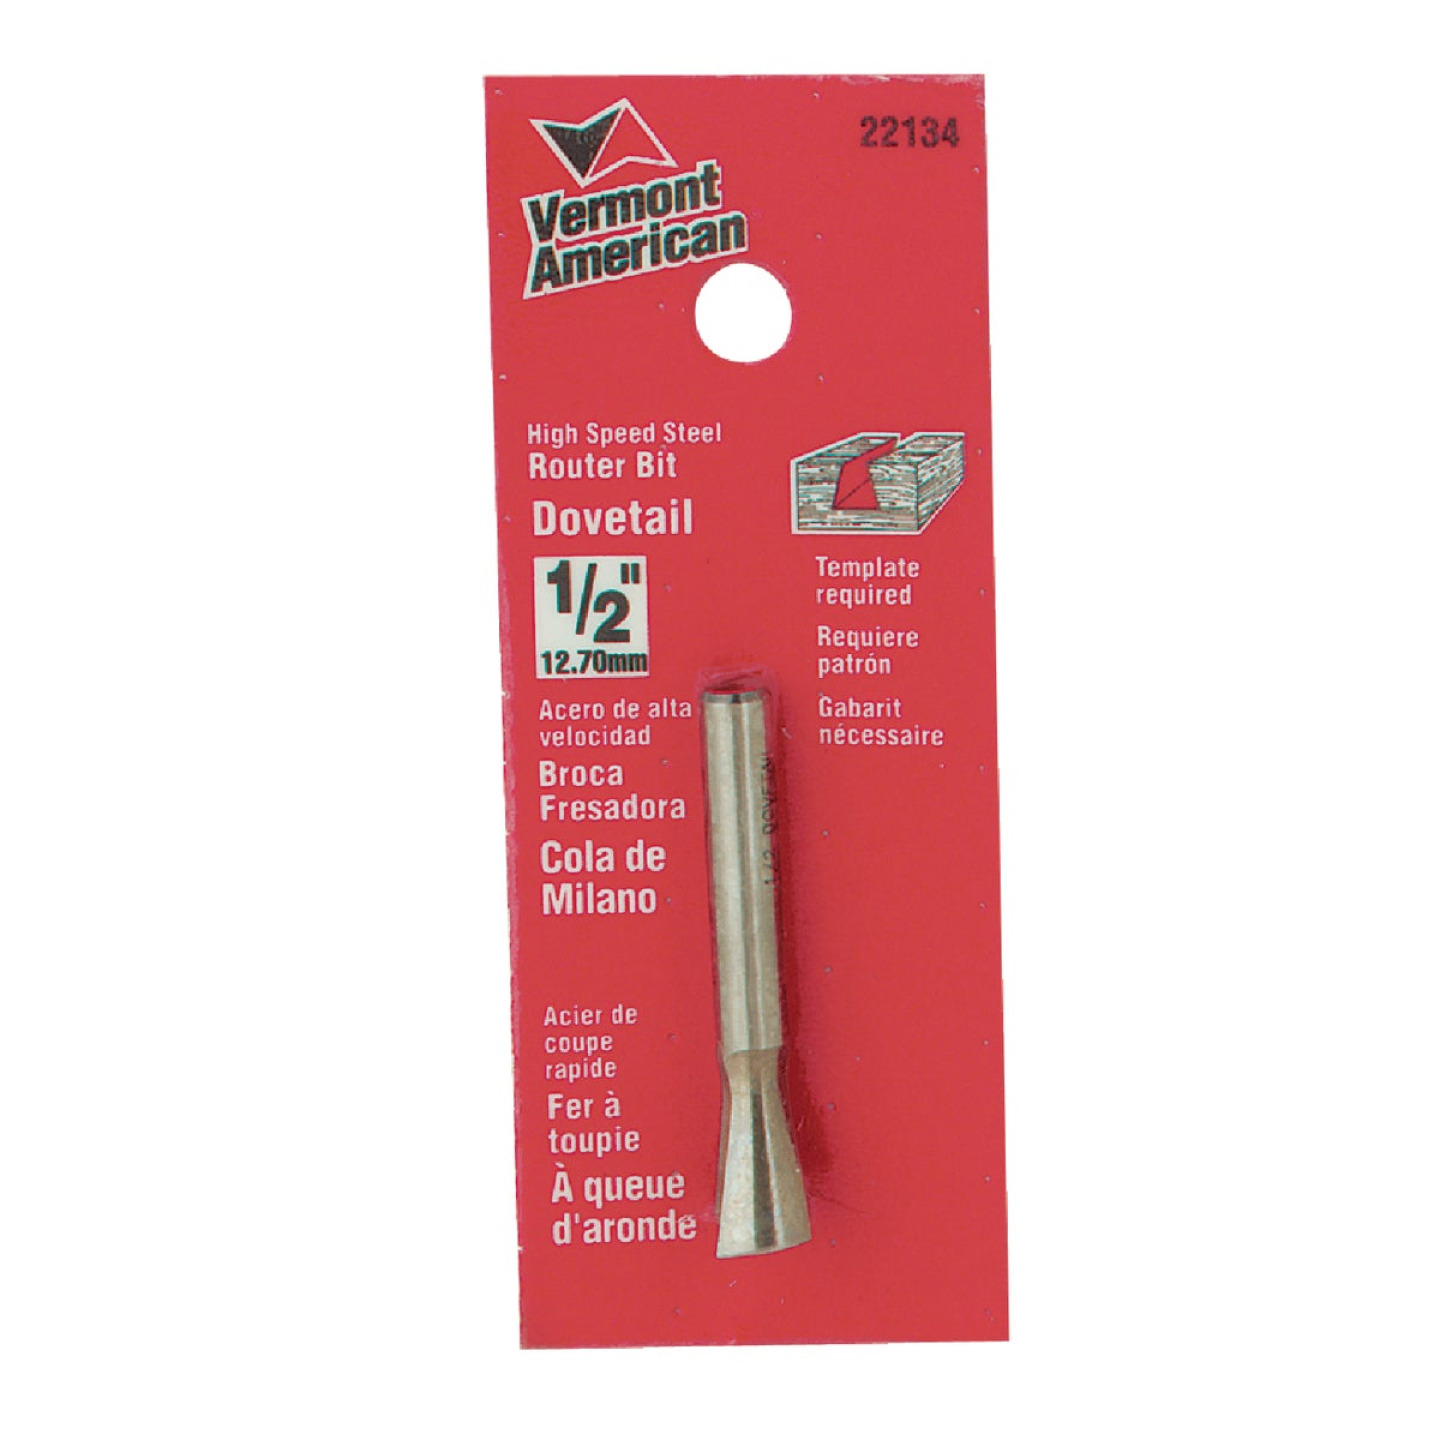 Vermont American Carbide Dovetail 1/2 In. Dovetail Bit Image 1